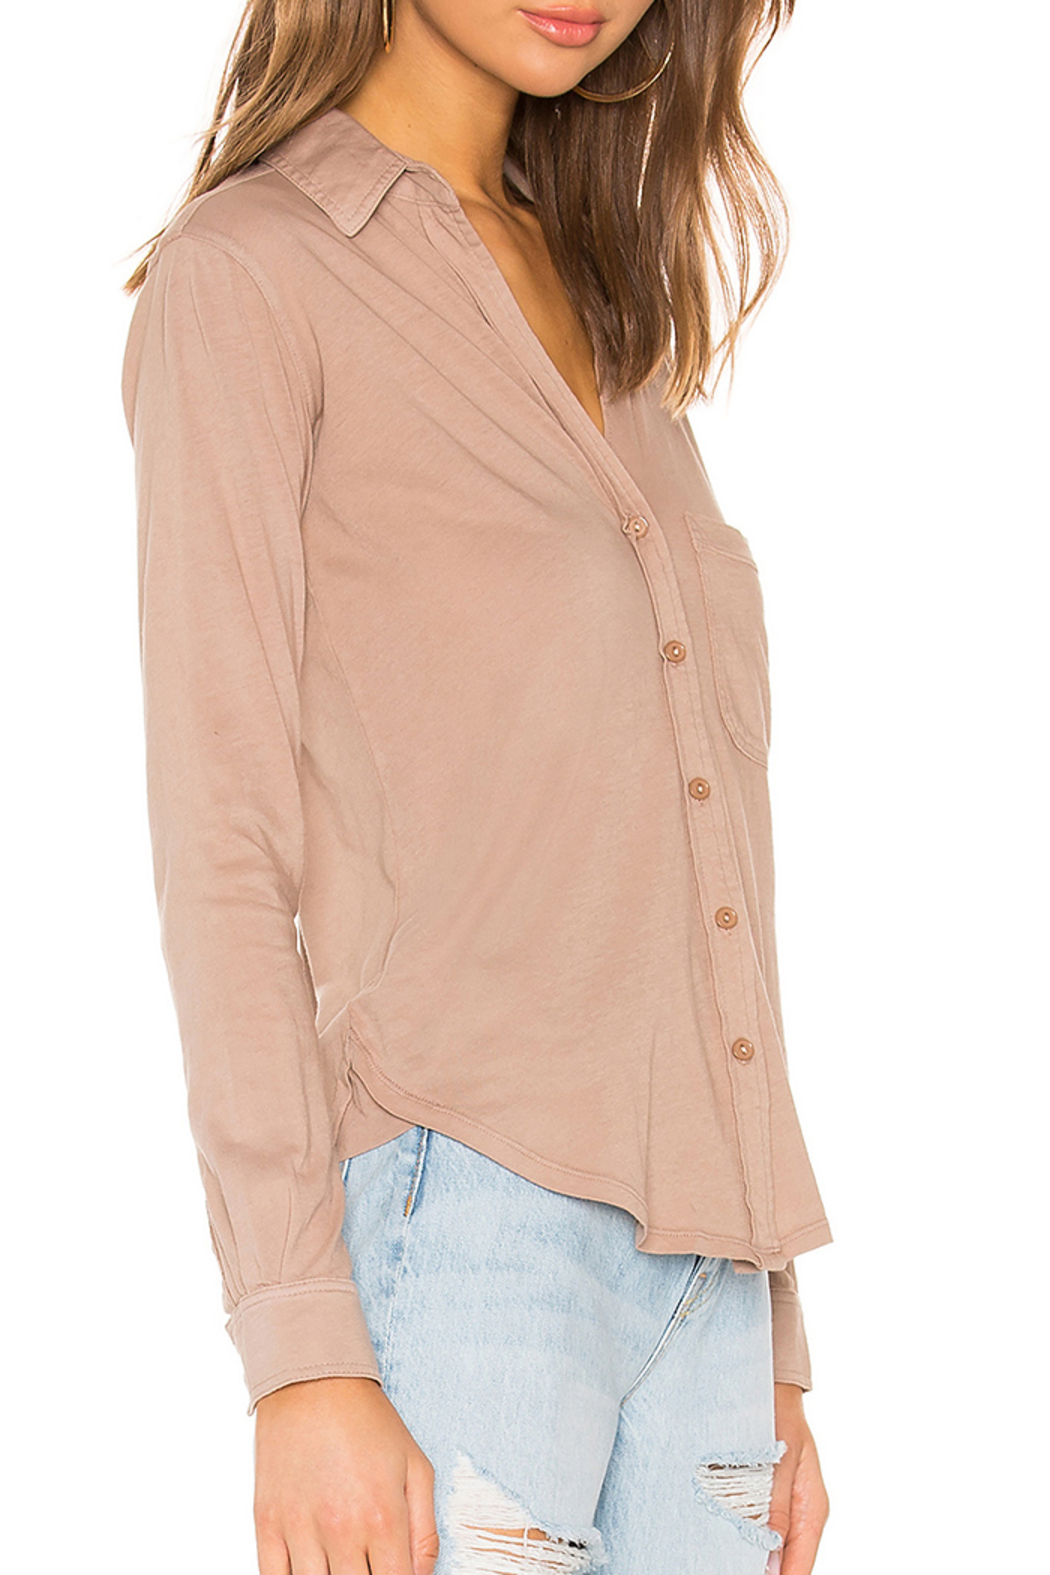 Bobi BOBI LIGHTWEIGHT JERSEY BUTTON DOWN - Front Full Image